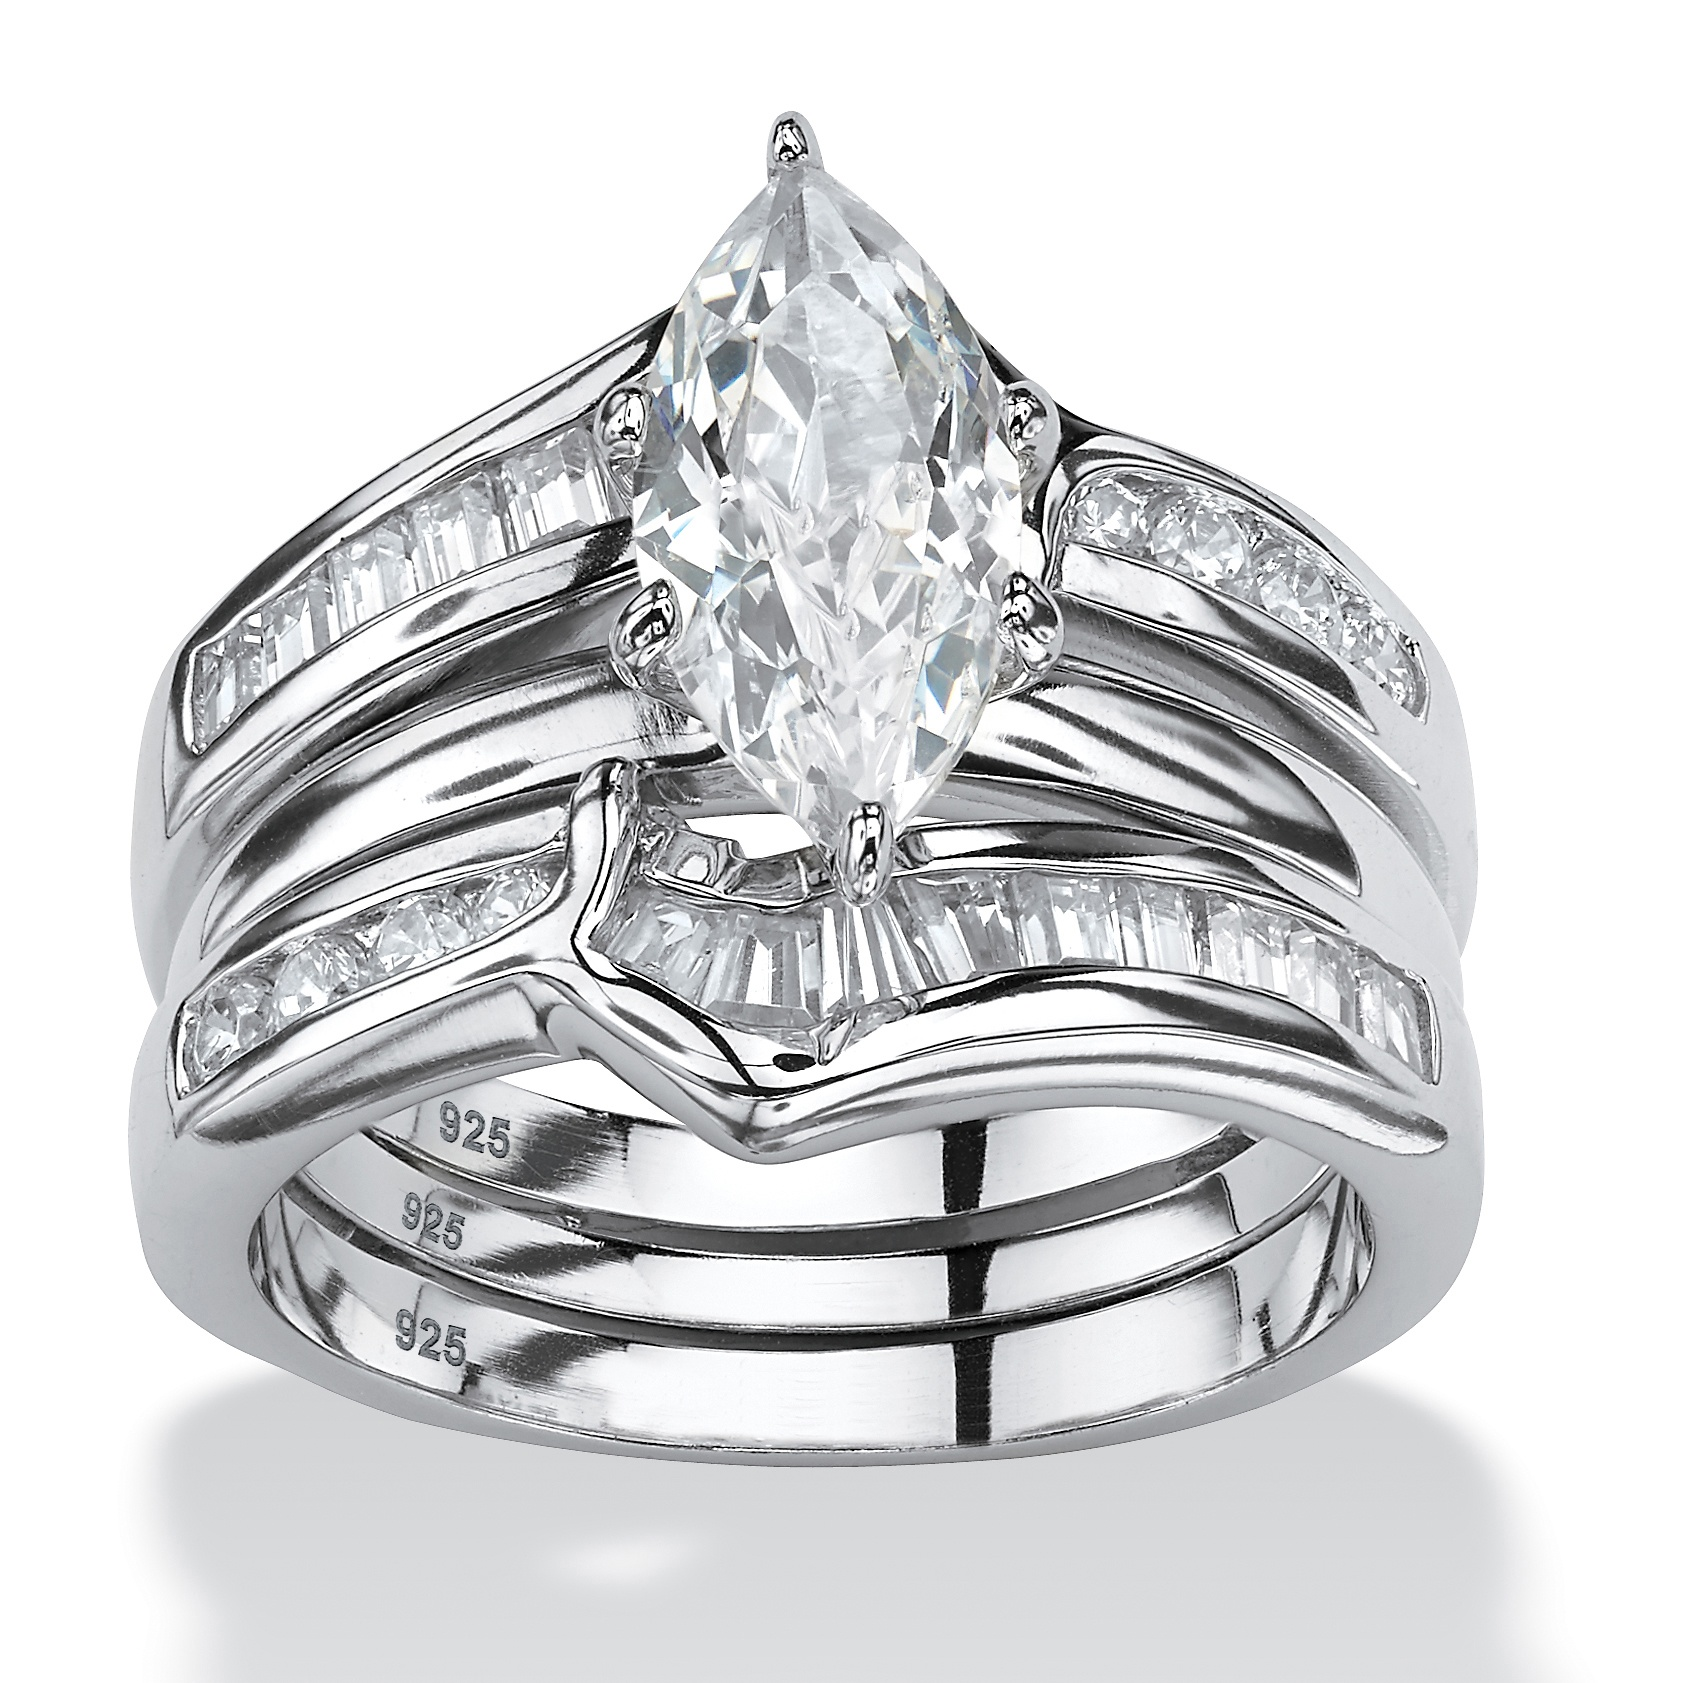 Wedding Ring Sets Palm Beach Jewelry